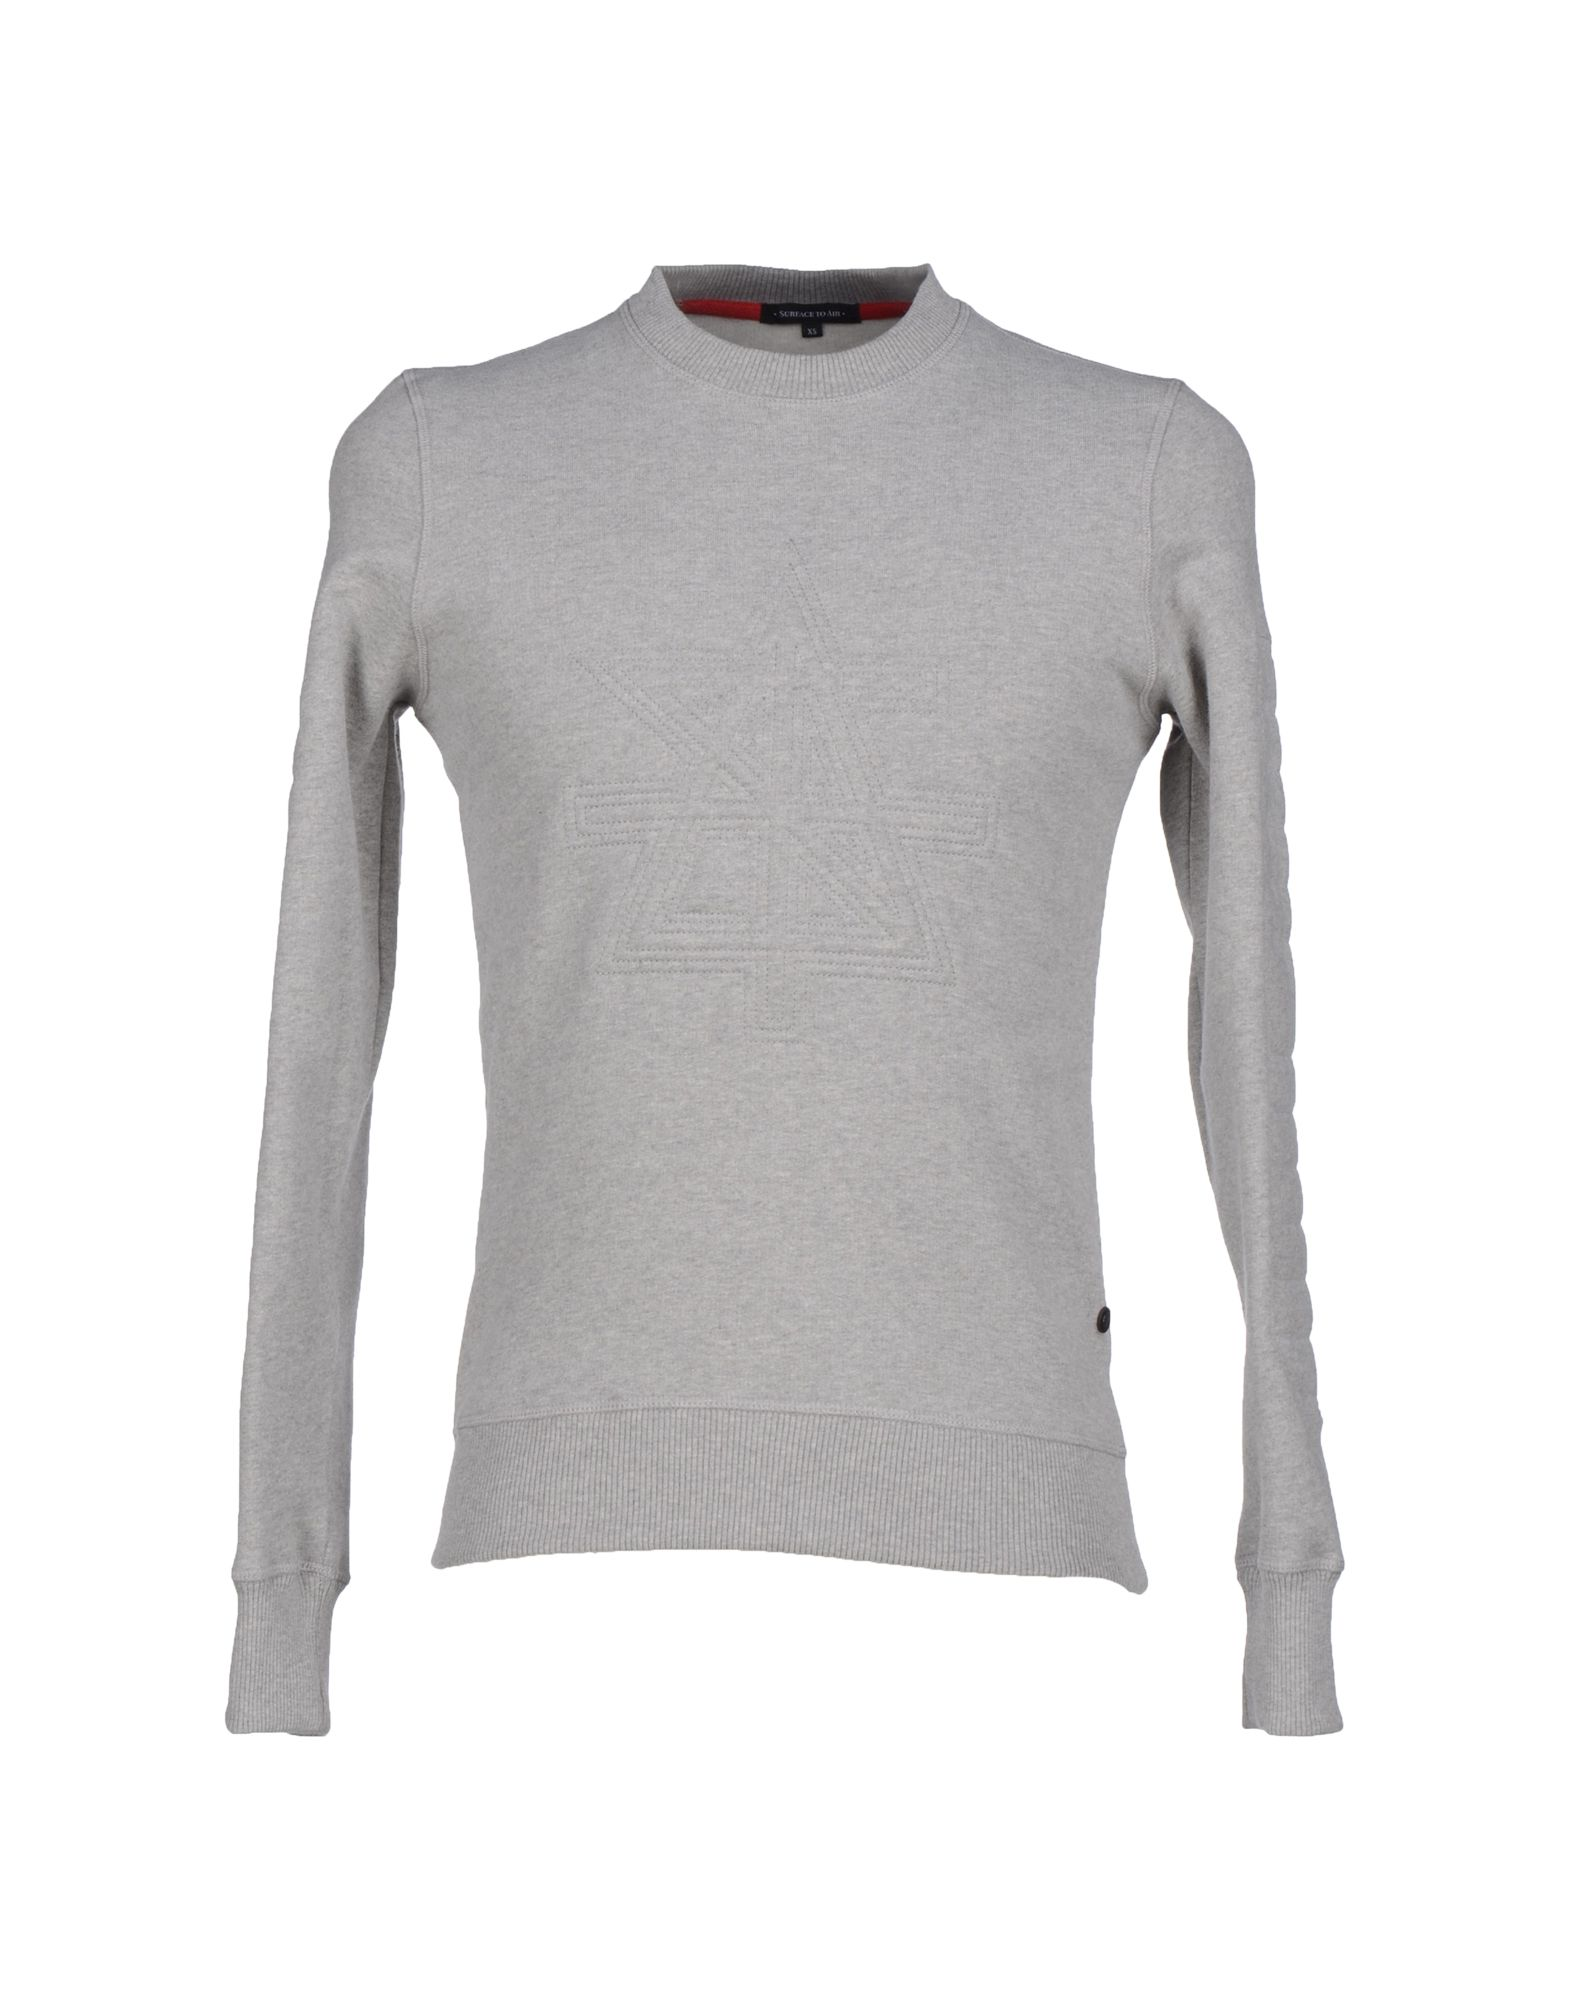 SURFACE TO AIR Sweatshirt in Light Grey